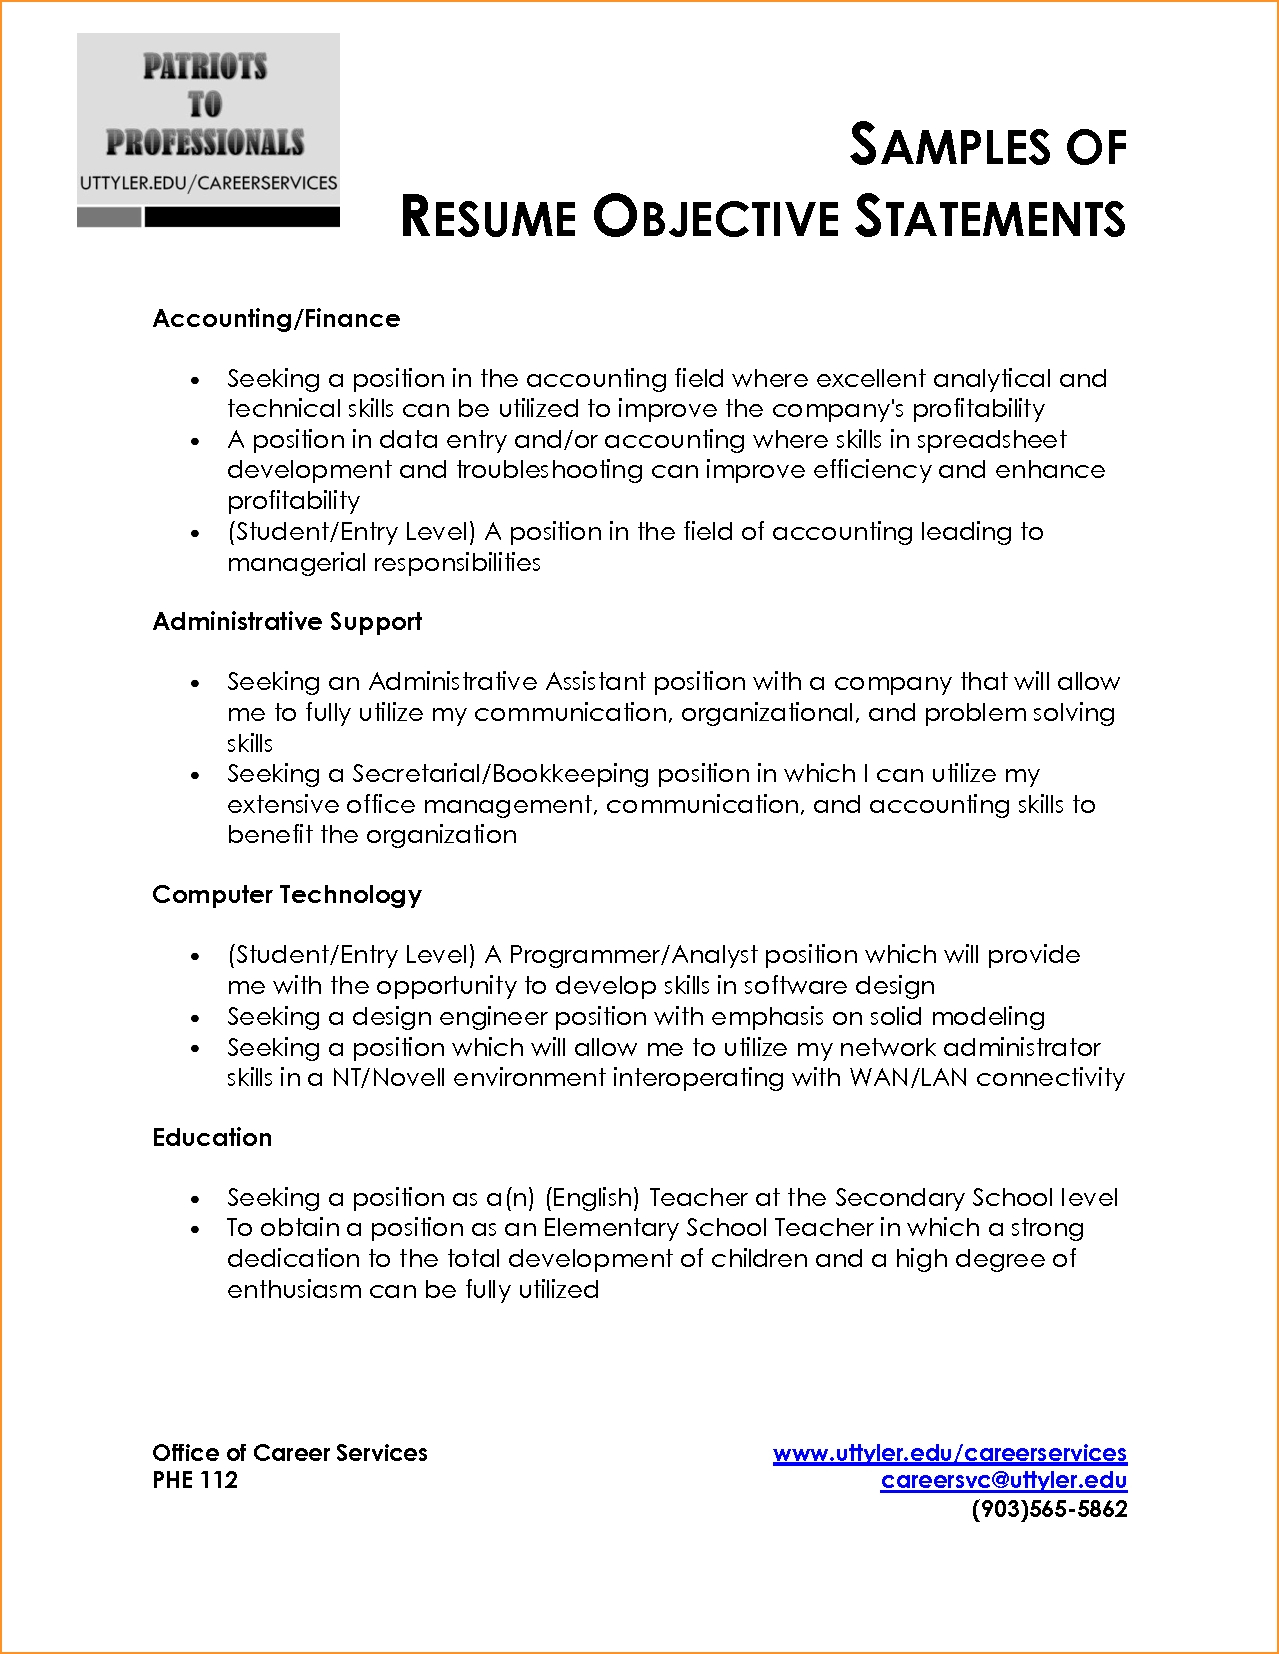 Resume Objective Samples.12883839 Questionnaire Template Together Inside Bookkeeping Questionnaire Template